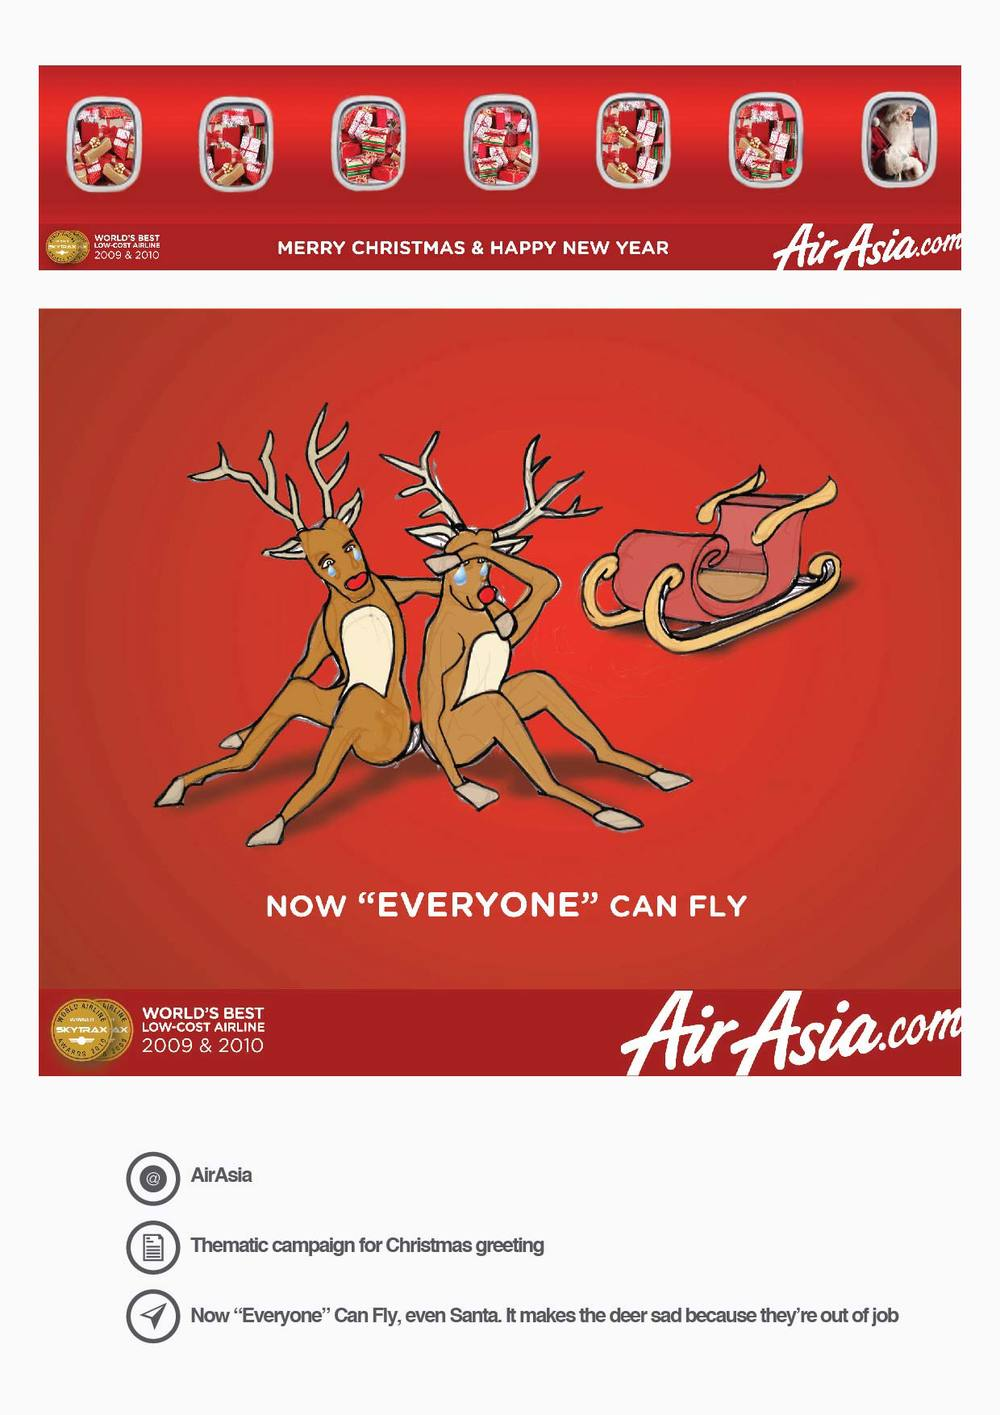 AirAsia Thematic campaign for Christmas greeting